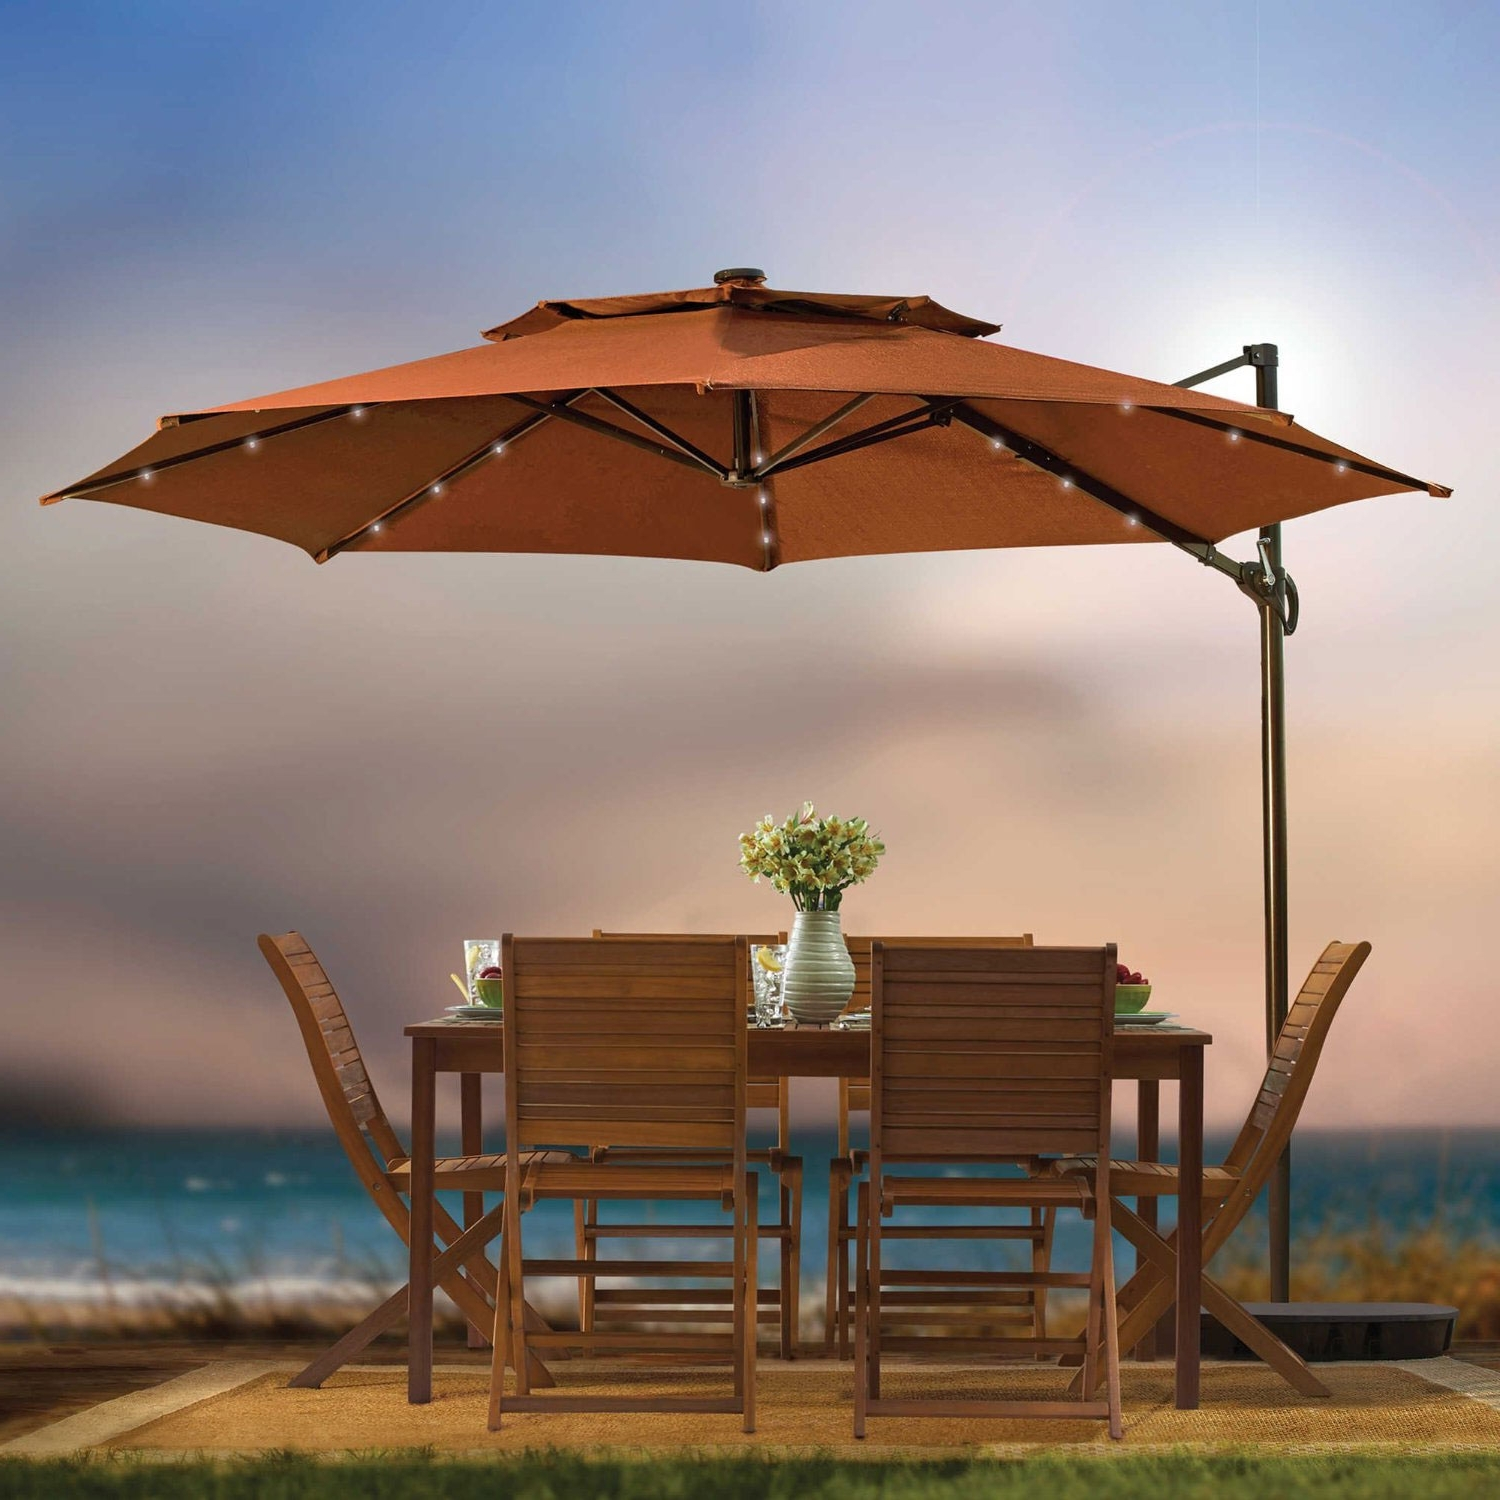 Patio Umbrellas For High Wind Areas Regarding Most Current Best Patio Umbrella – Reviews & Buying Guide (september 2018) (View 4 of 20)